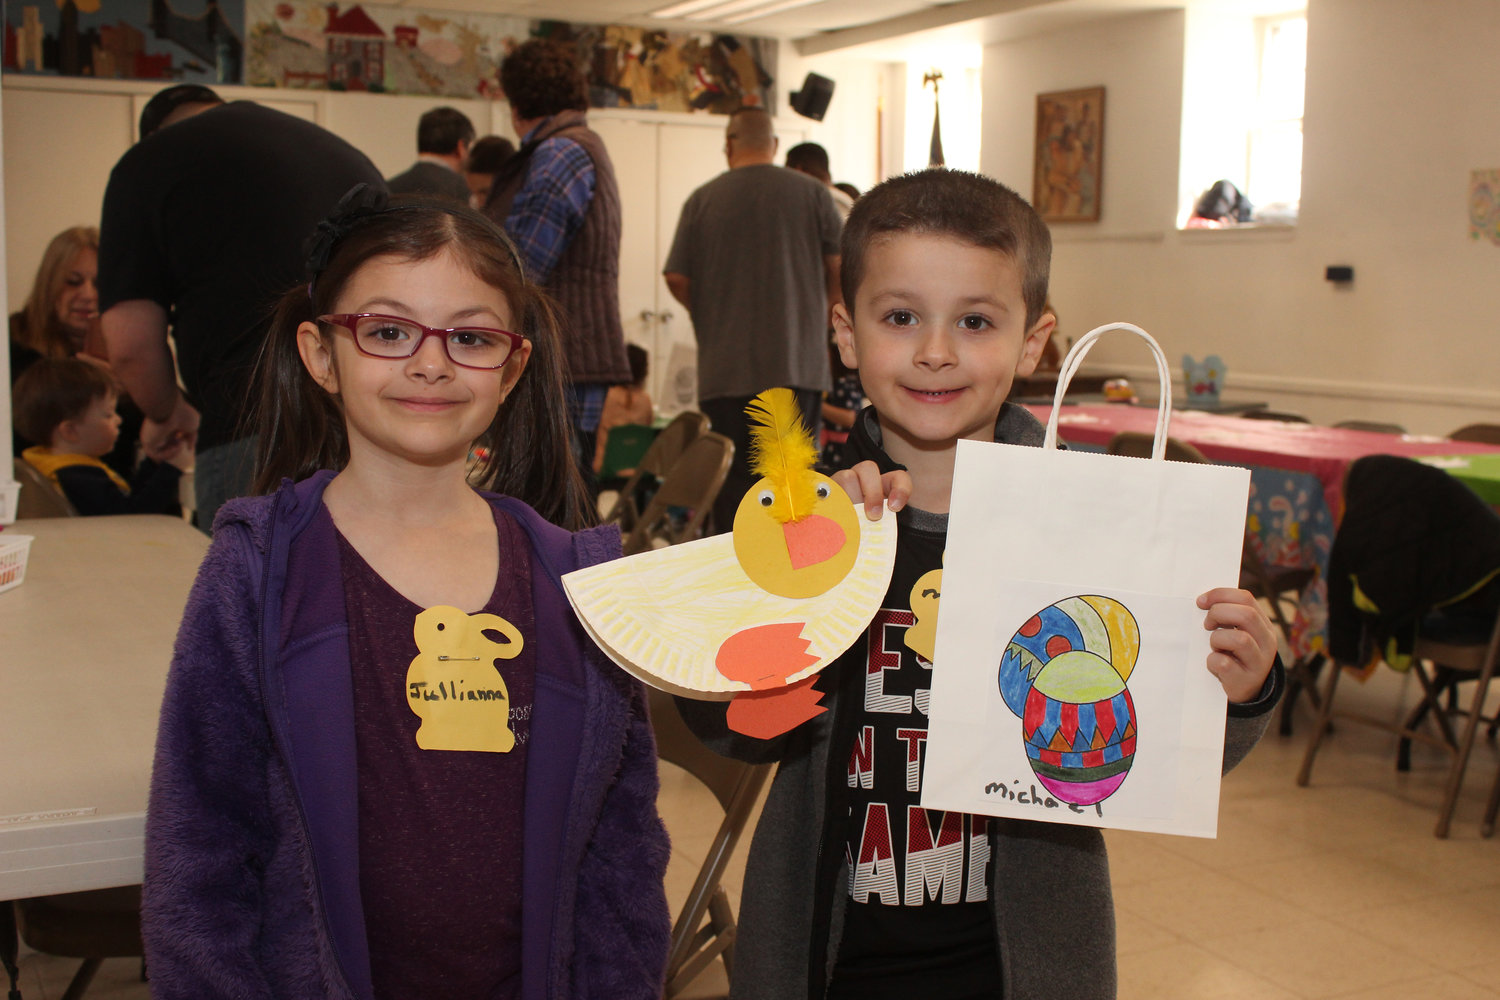 The First Presbyterian Church of Oceanside hosted its Easter Funday event on April 6, when children and their families took part in a variety of springtime activities. Twins Julianna and Michael Sciglibaglio, 6, displayed the Easter bags they decorated.